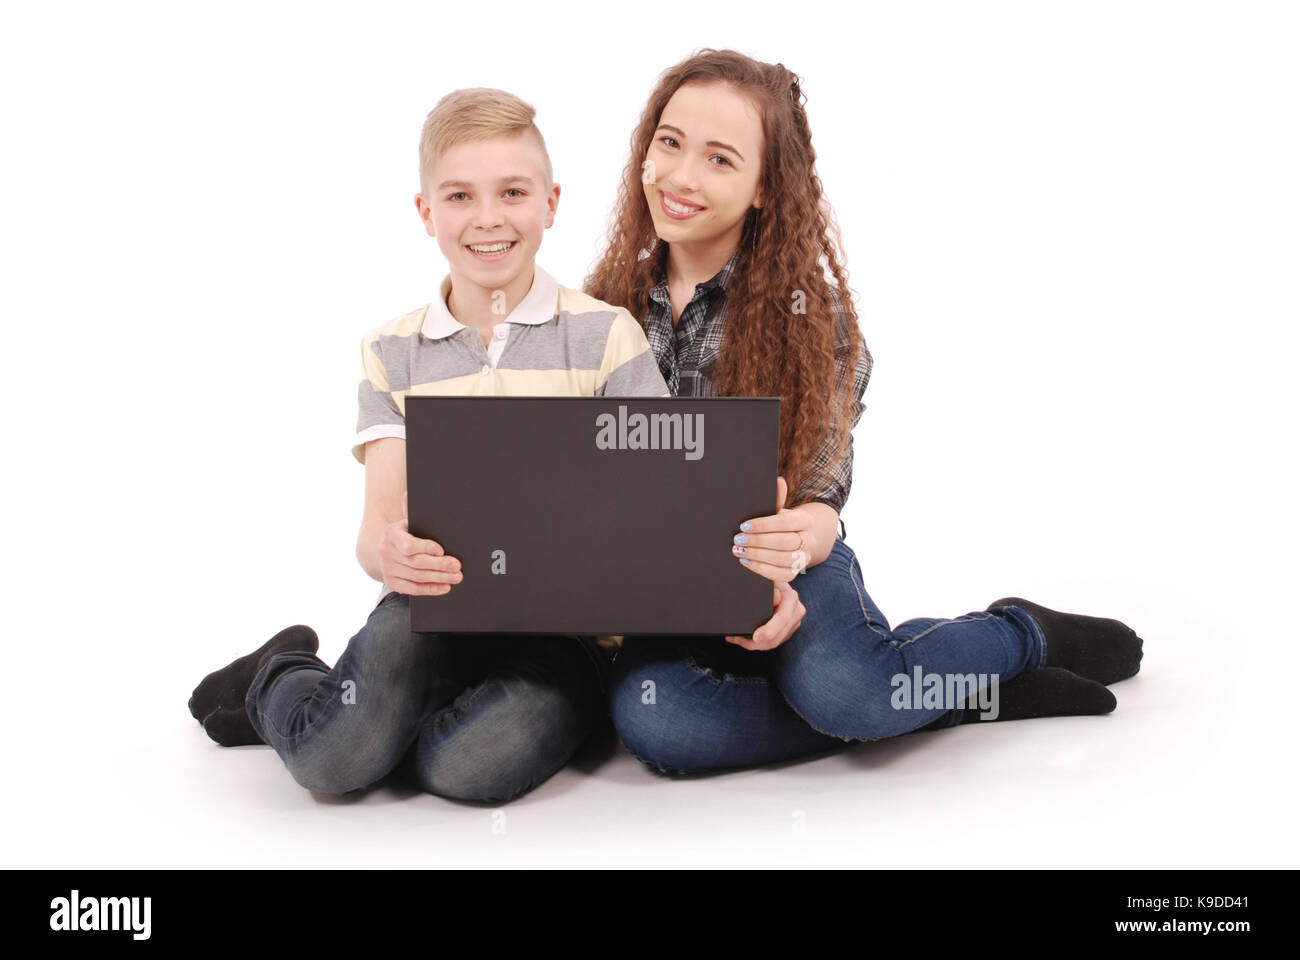 Boy and girl using a laptop isolated on white background - Stock Image